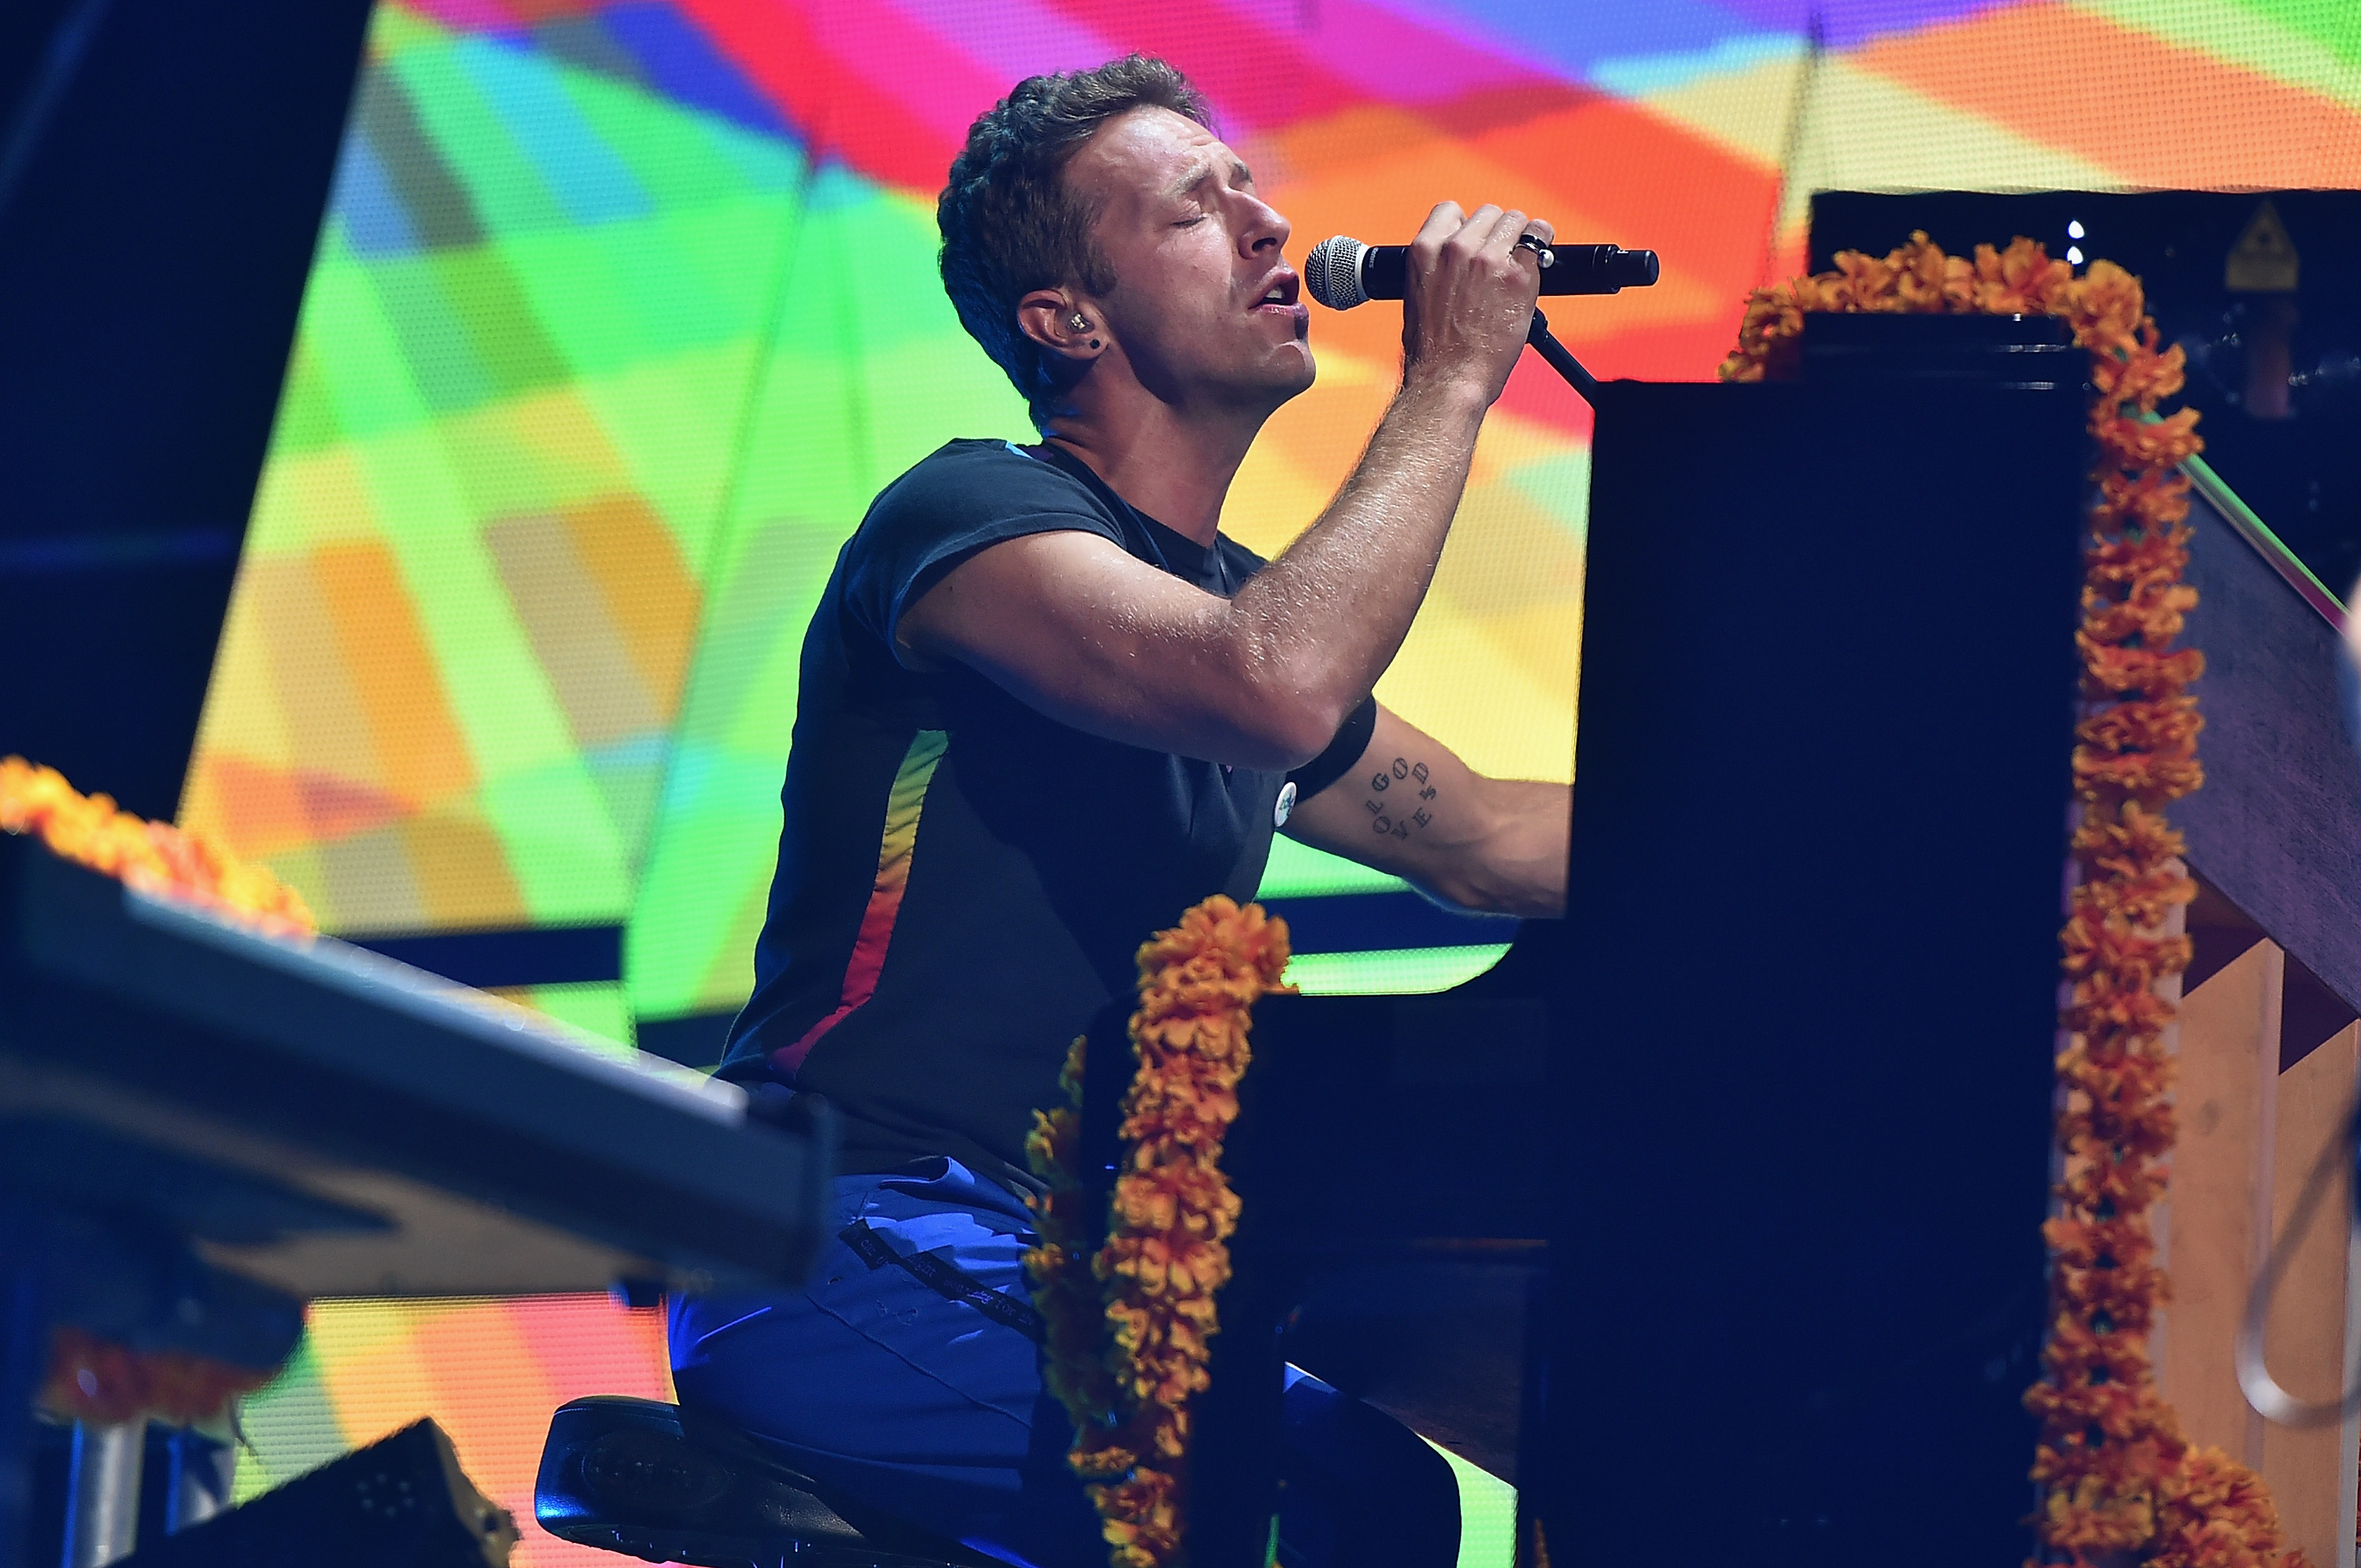 global citizen festival stereogum coldplay just soundchecked a new song for global citizen fest